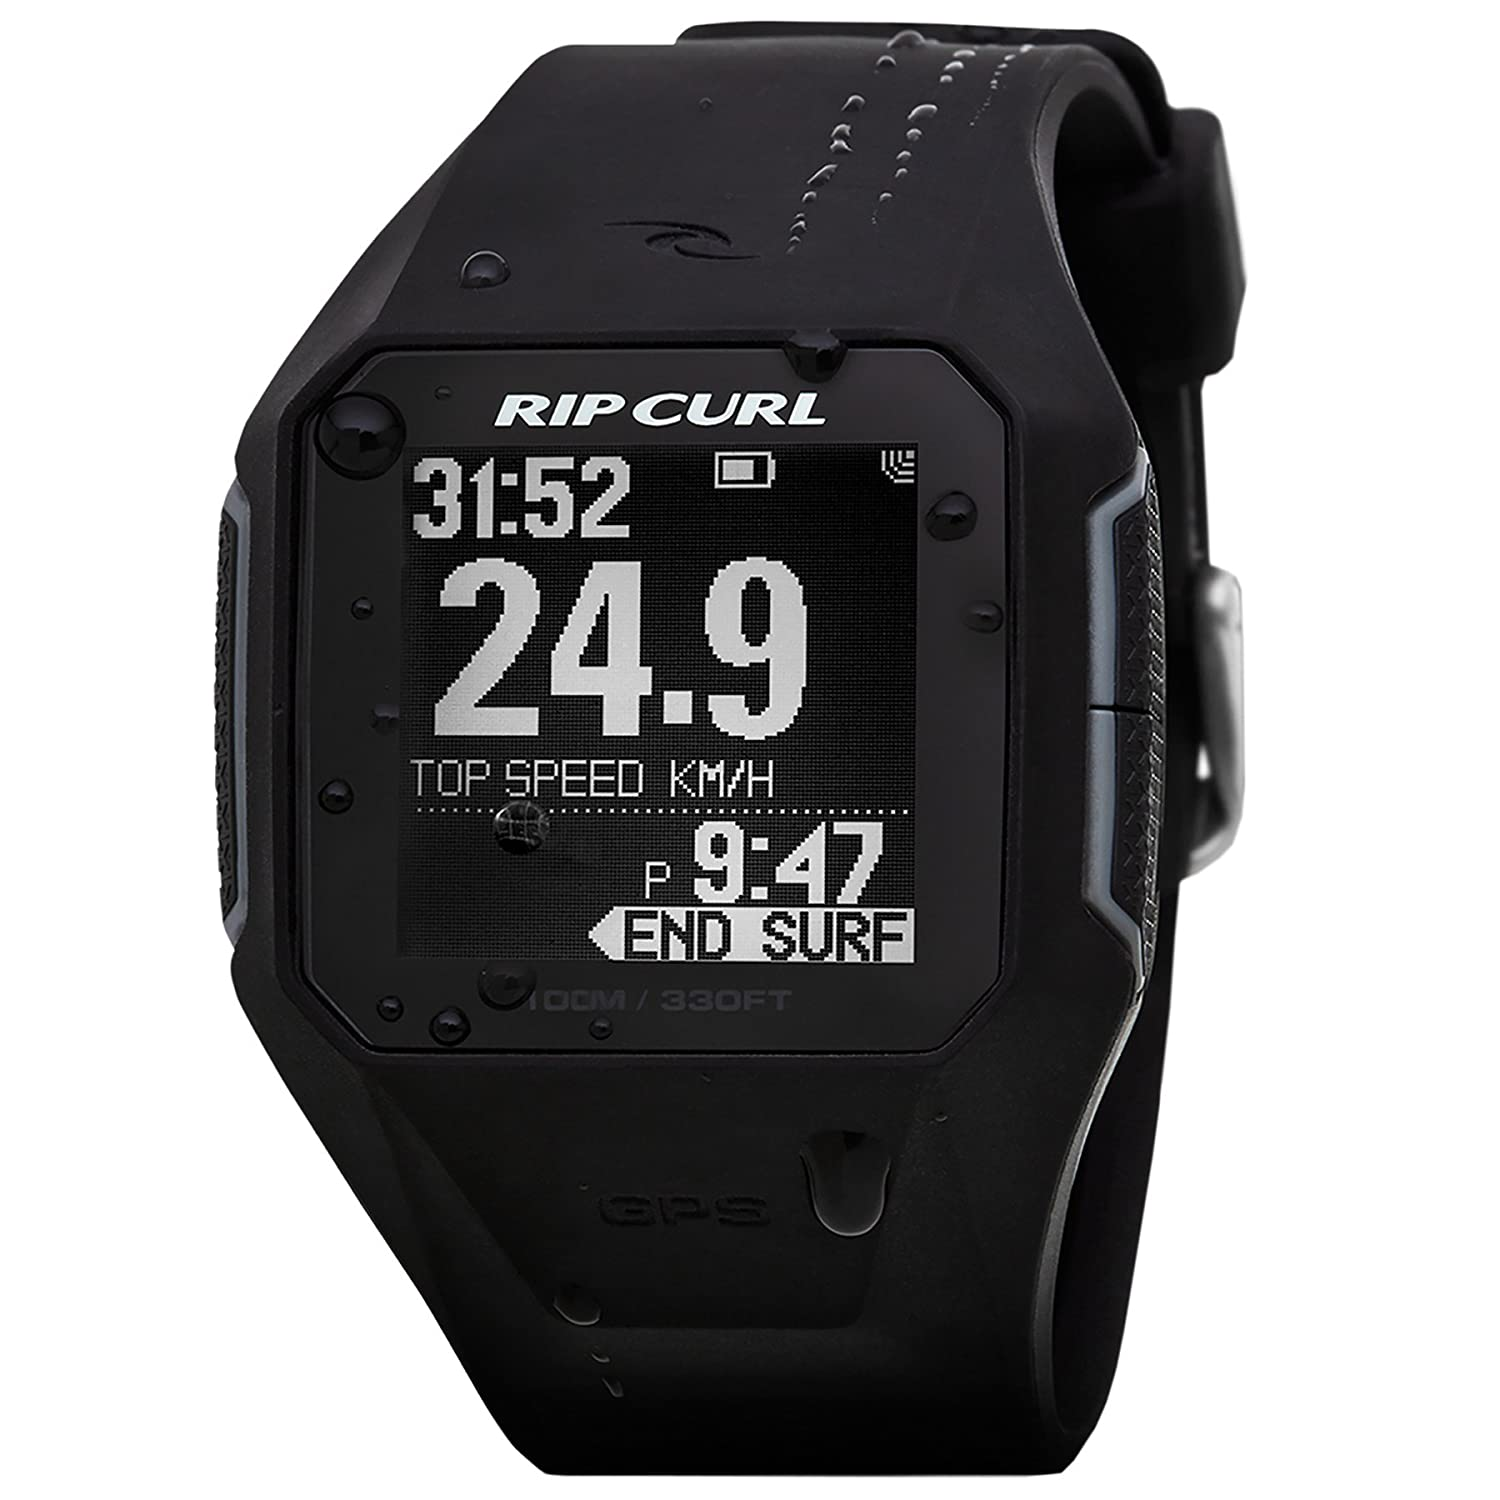 running can gear buy patrol watches best of the gps lead money full